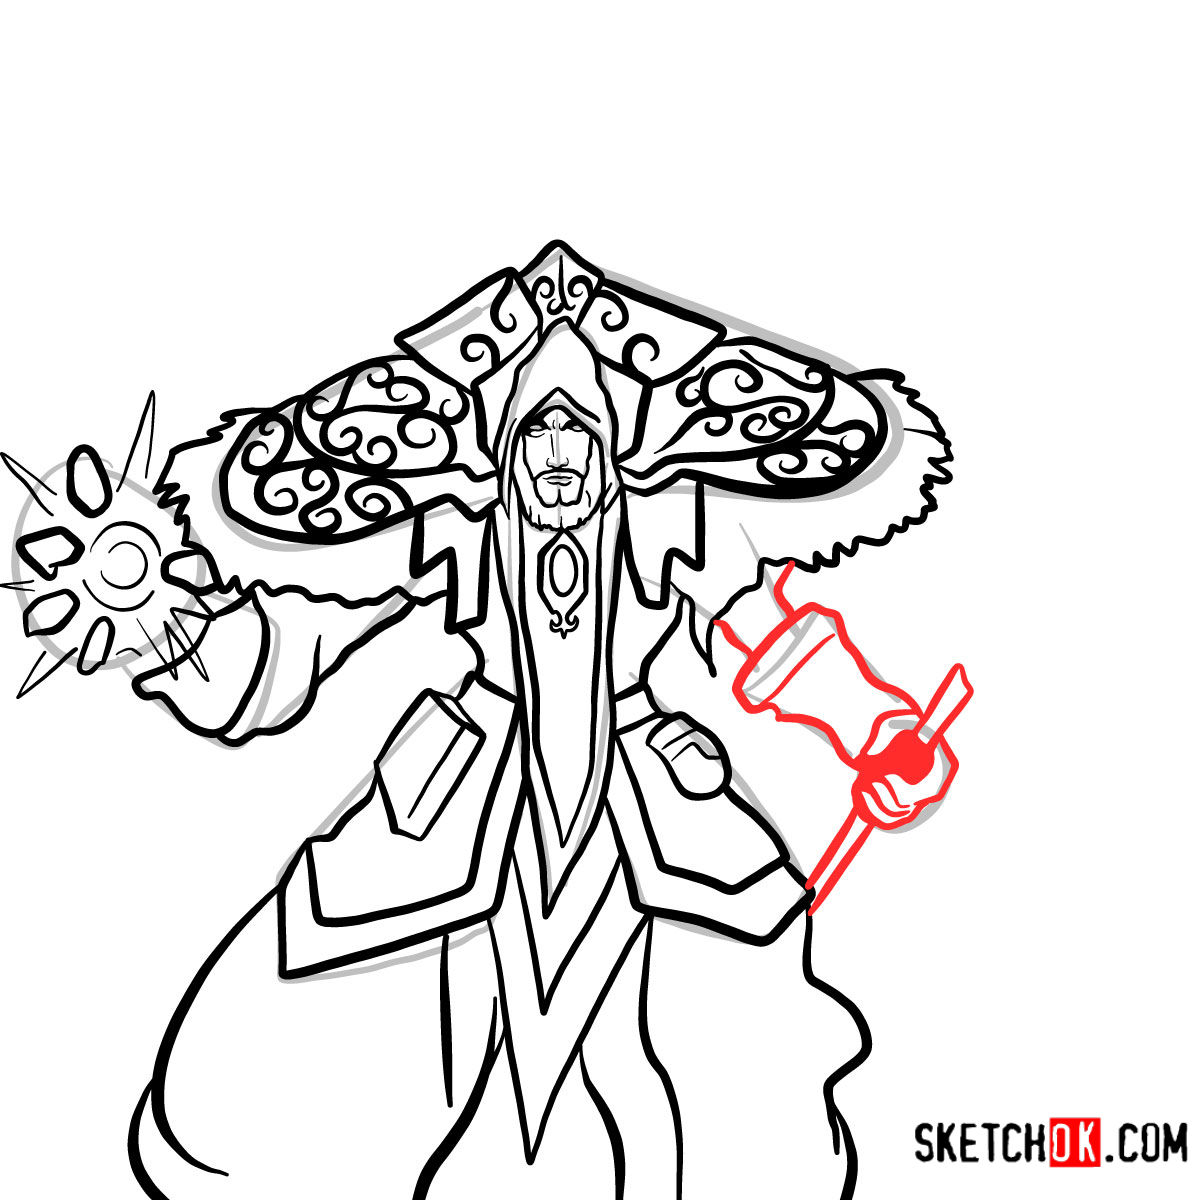 How to draw Magus Medivh | World of Warcraft - step 14